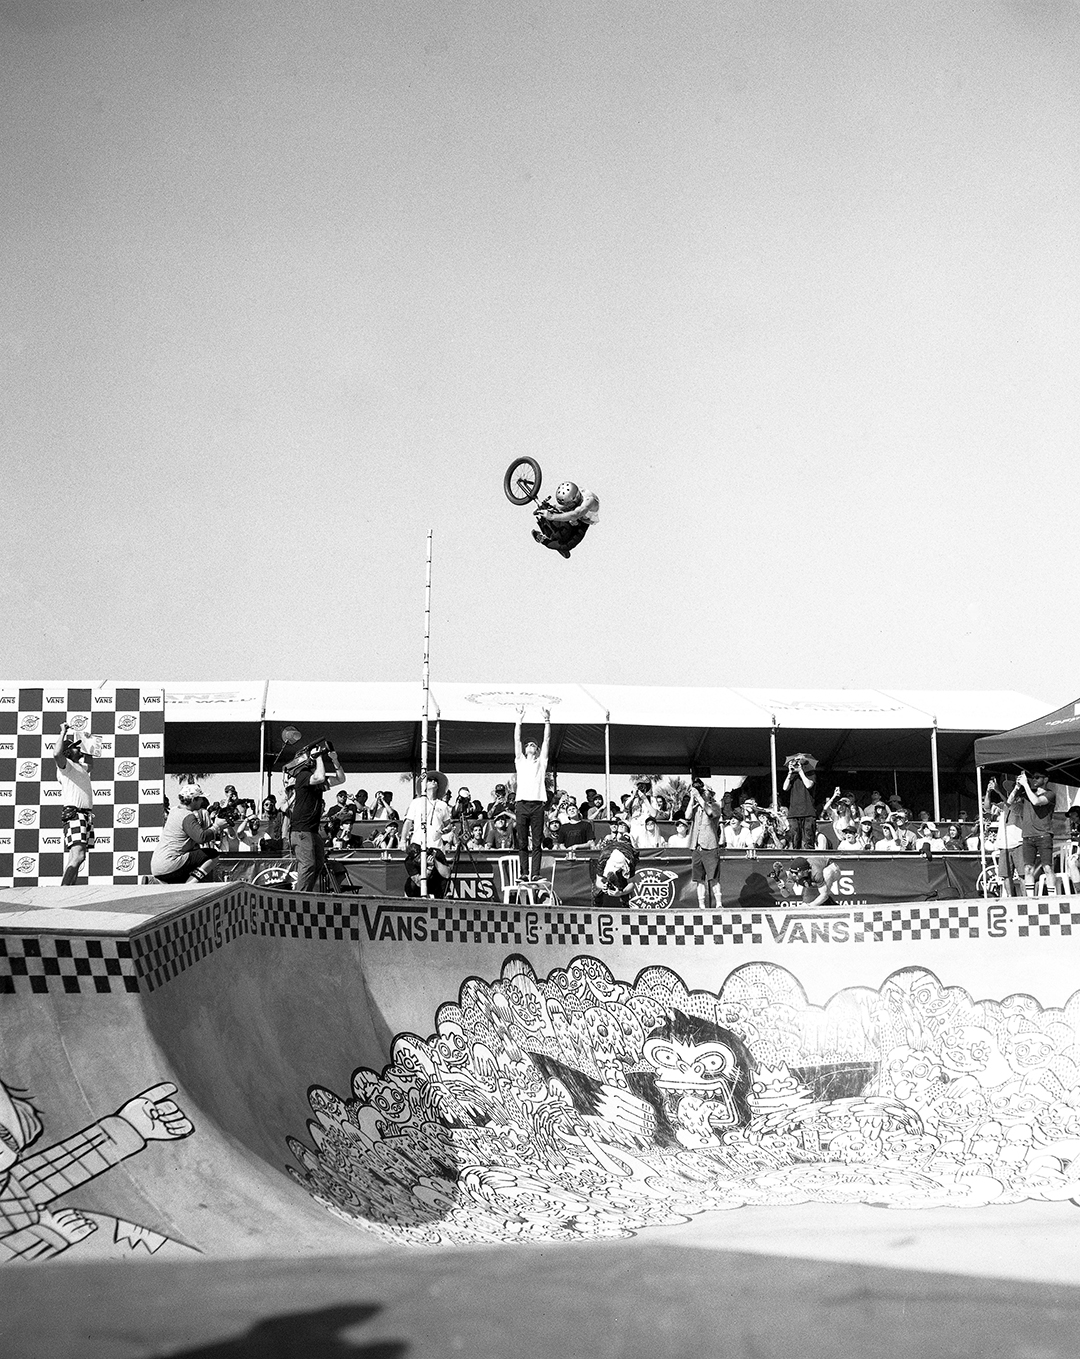 This photo was taken using a Graflex Speed Graphic 4x5 on Kodak Tmax 100. The rider is Larry Edgar at the 2017 Vans BMX Pro Cup during the high air contest. Larry has blown up on the scene as the undisputed king of high airs and this image is exactly why. If you look closely you will see the previous high air champ standing on a chair with his arms extended and still nowhere near reaching Larry.